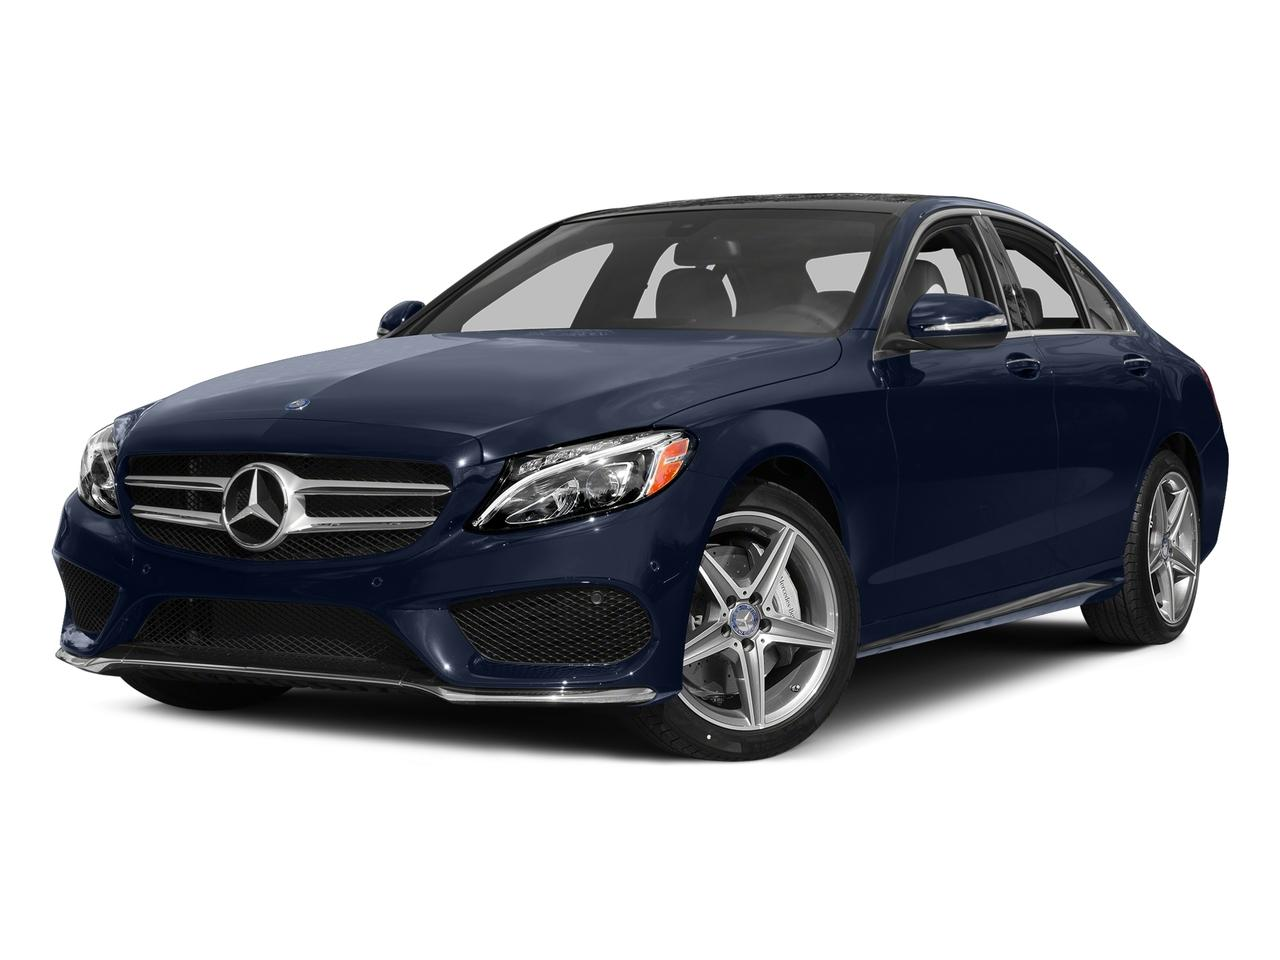 2015 Mercedes-Benz C-Class Vehicle Photo in Melbourne, FL 32901